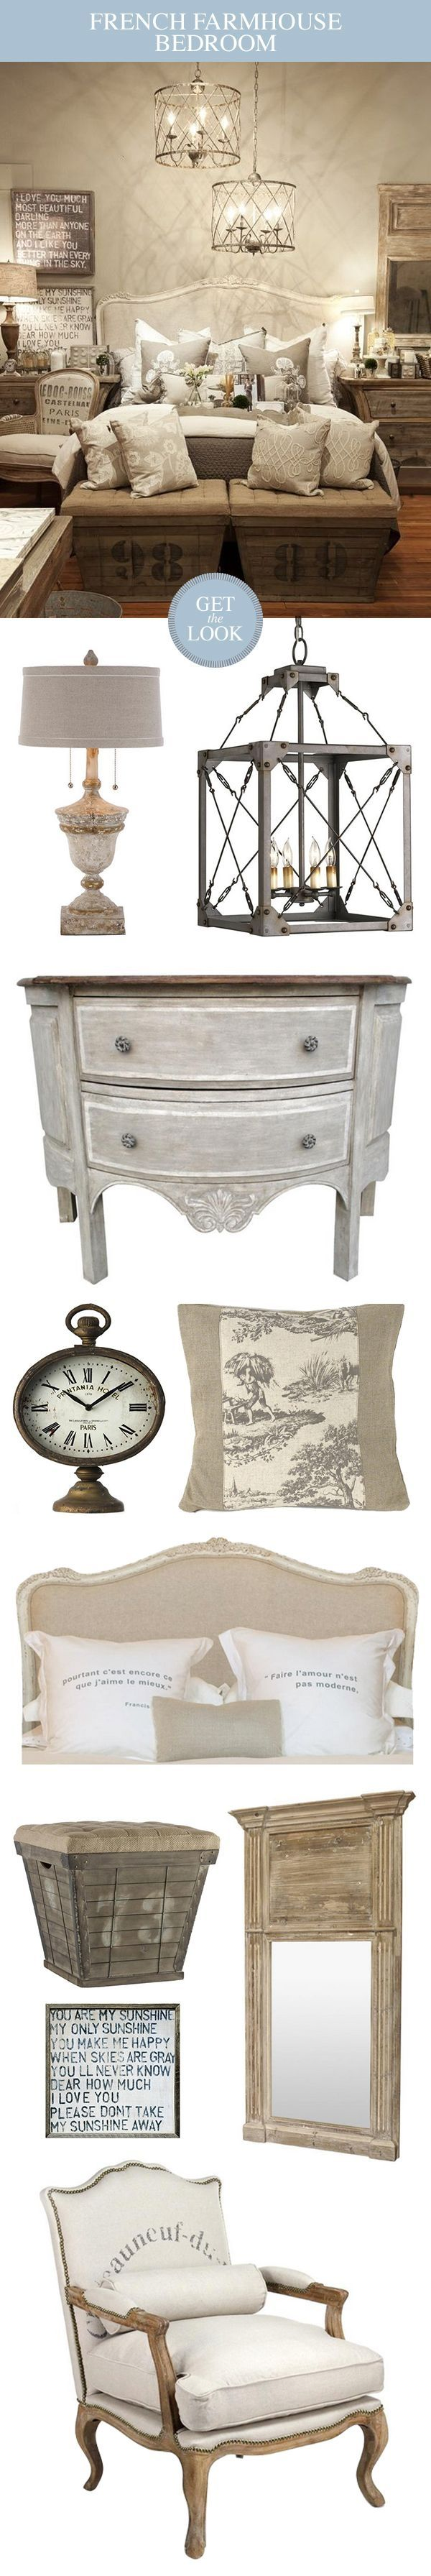 Grey french country bedroom whatus not to love about this french country farmhouse inspired